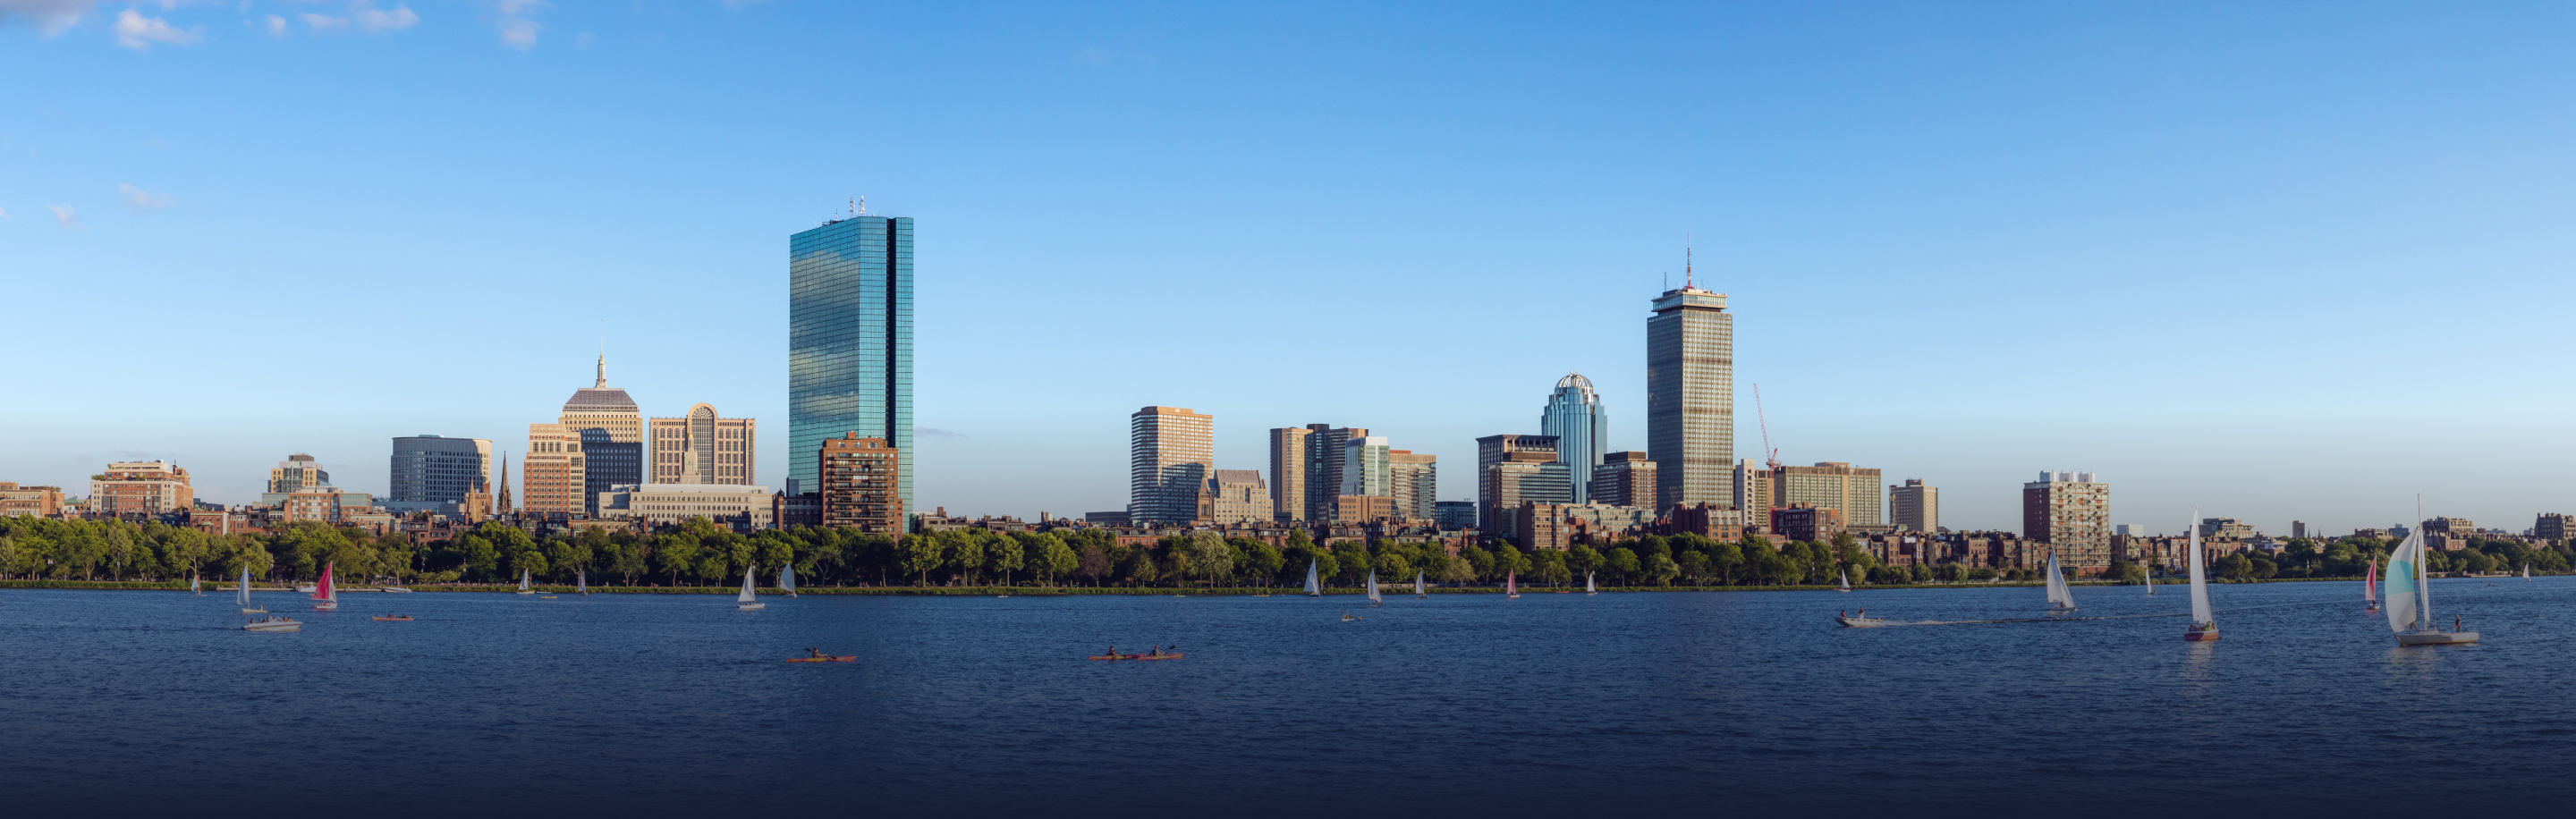 The skyline of the city of Boston.